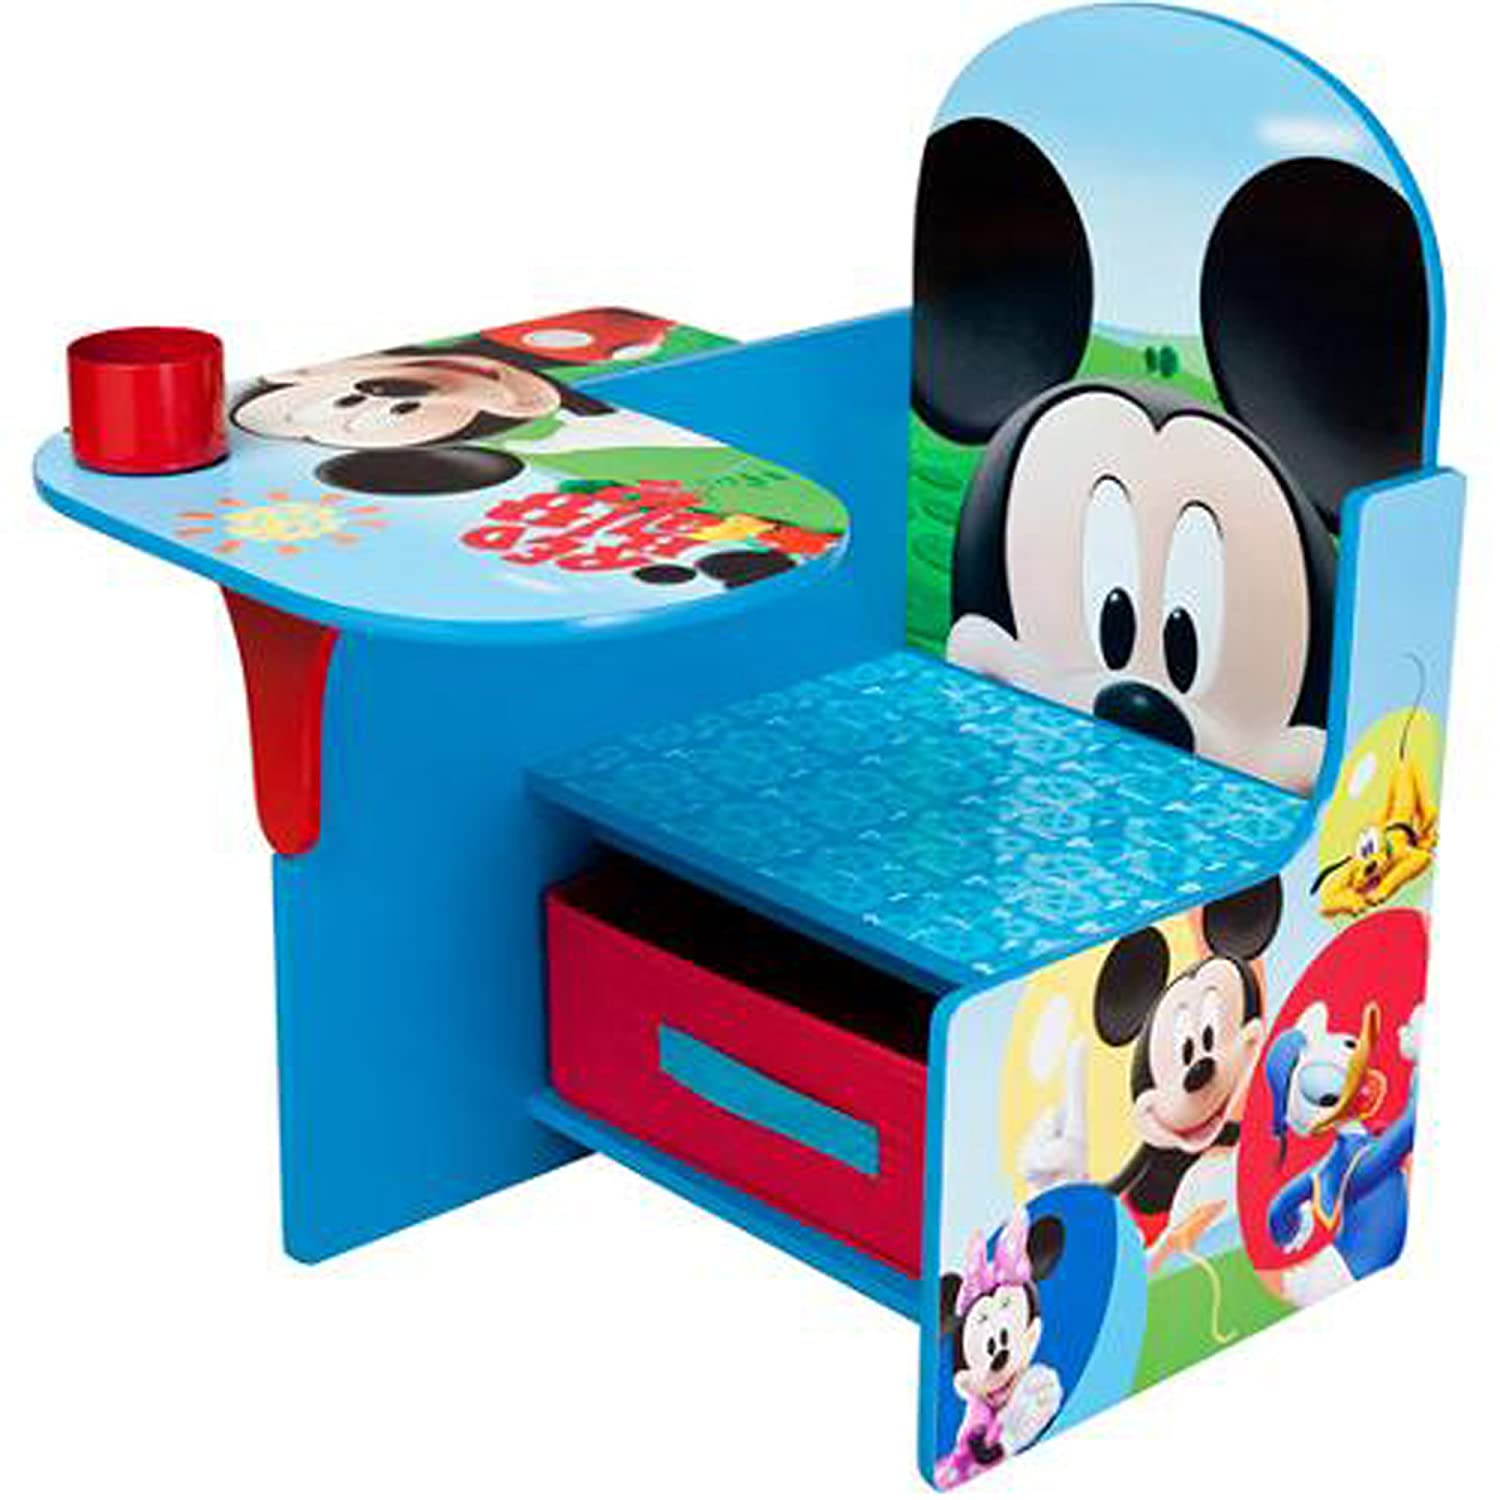 Merveilleux Amazon.com: Disney Chair Desk With Storage Bin Mickey Mouse Characters Desk  Set Fabric Storage Bin Seat Extra Storage Table Desk Chair MDF Construction  ...